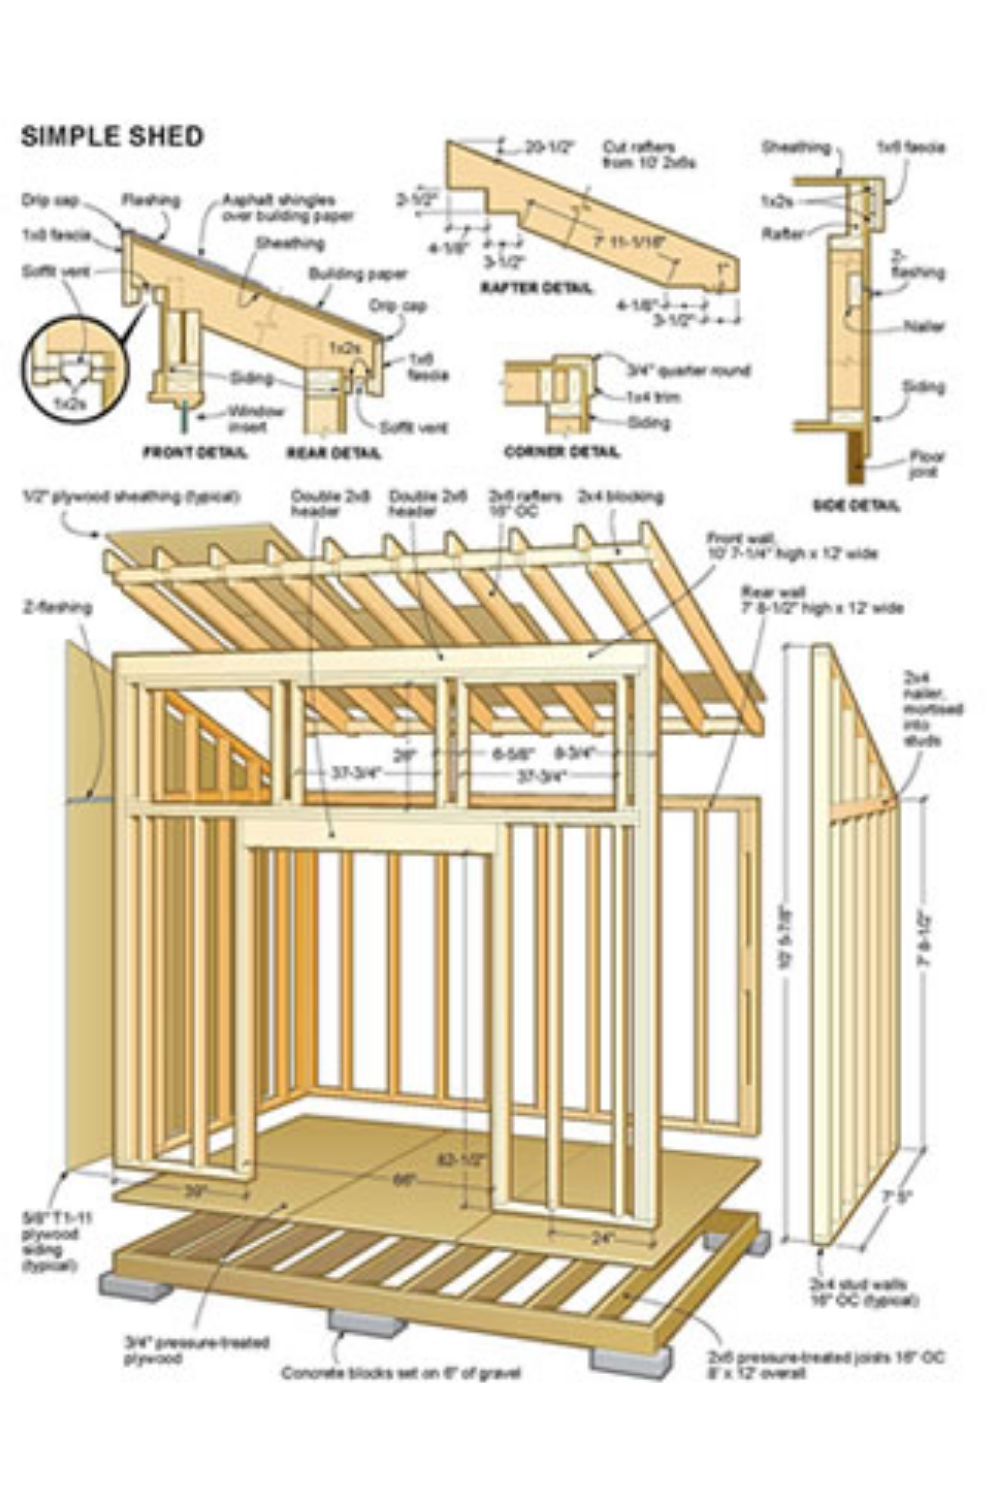 Now You Can Build A Brand New Shed In Under A Week Following This Step By Step Guides In 2020 Small Shed Plans Building A Shed Simple Shed